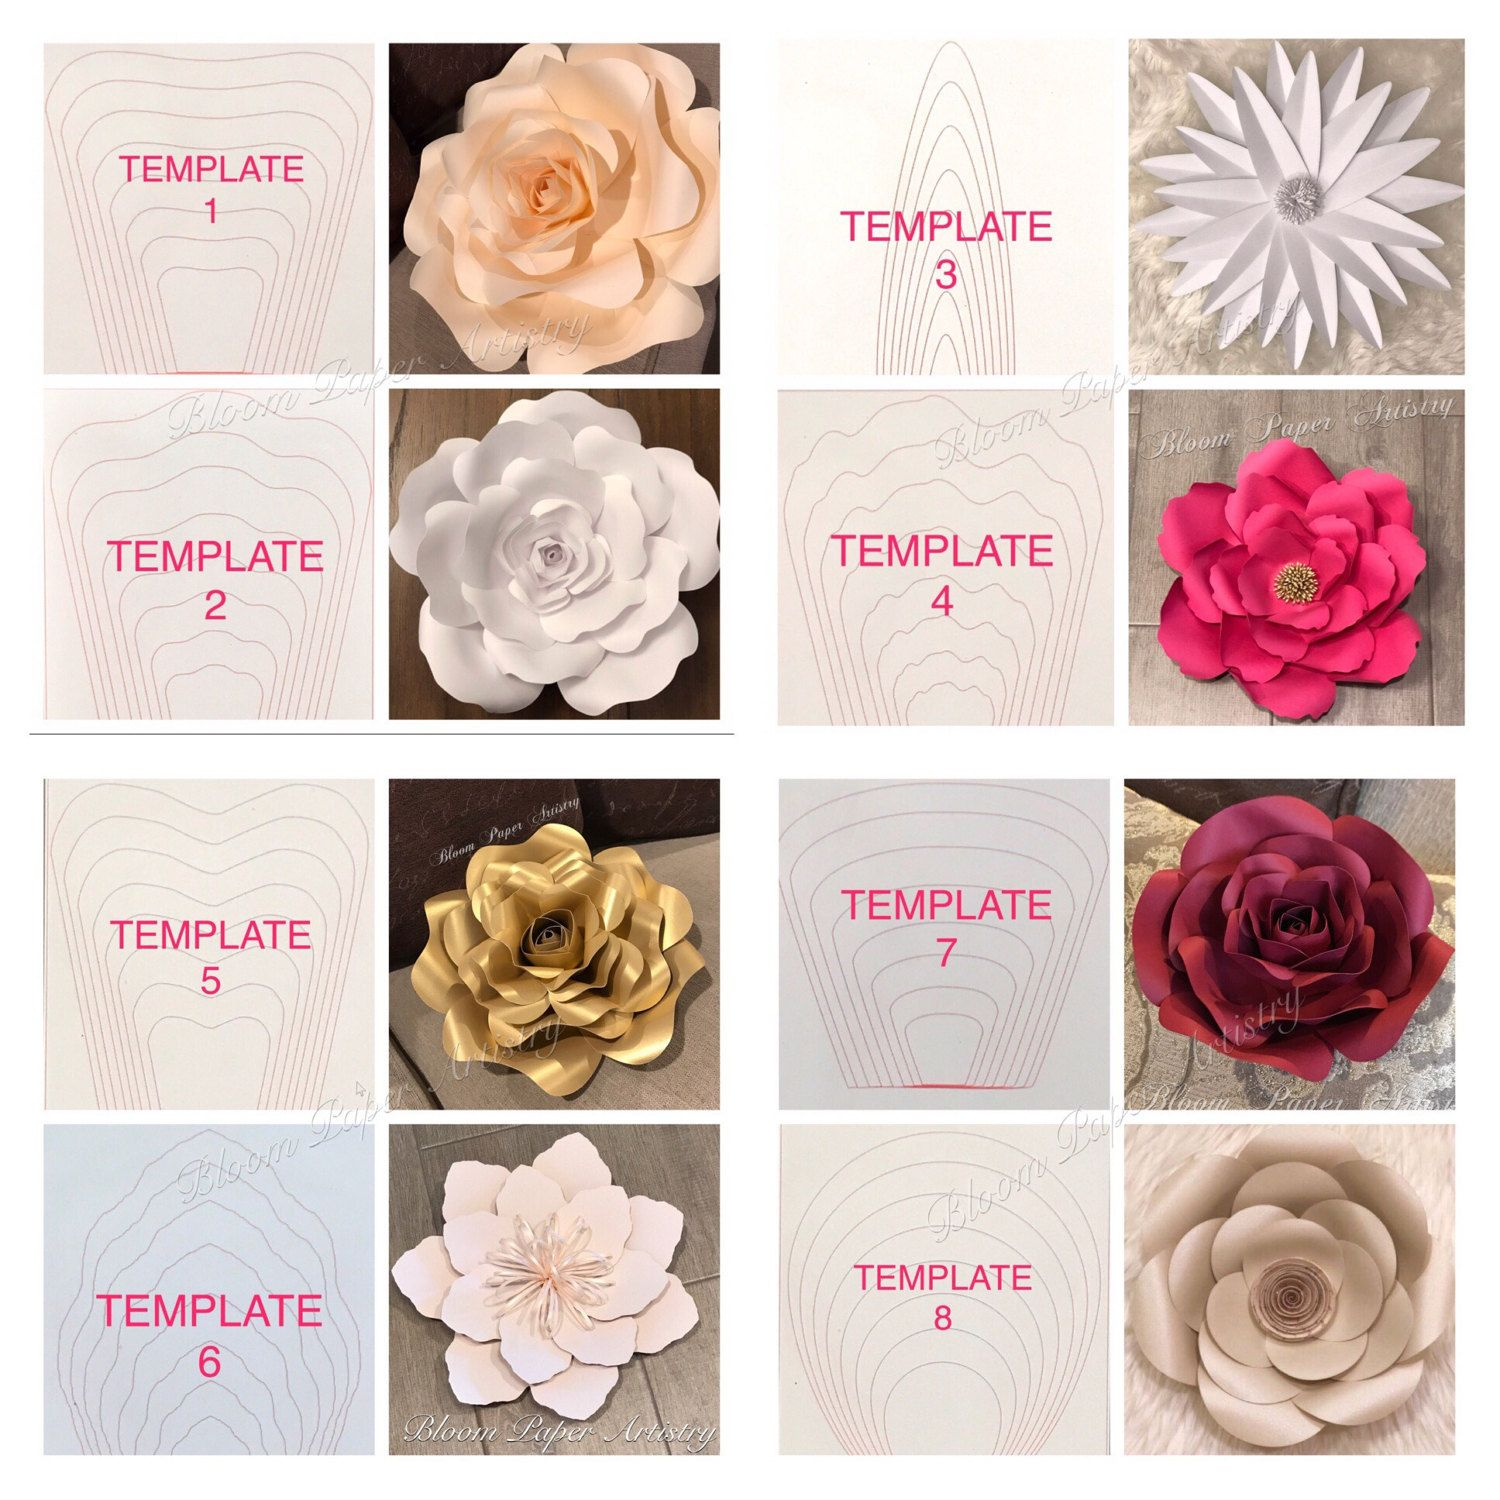 Details per template all paper flower templates for Diy will template